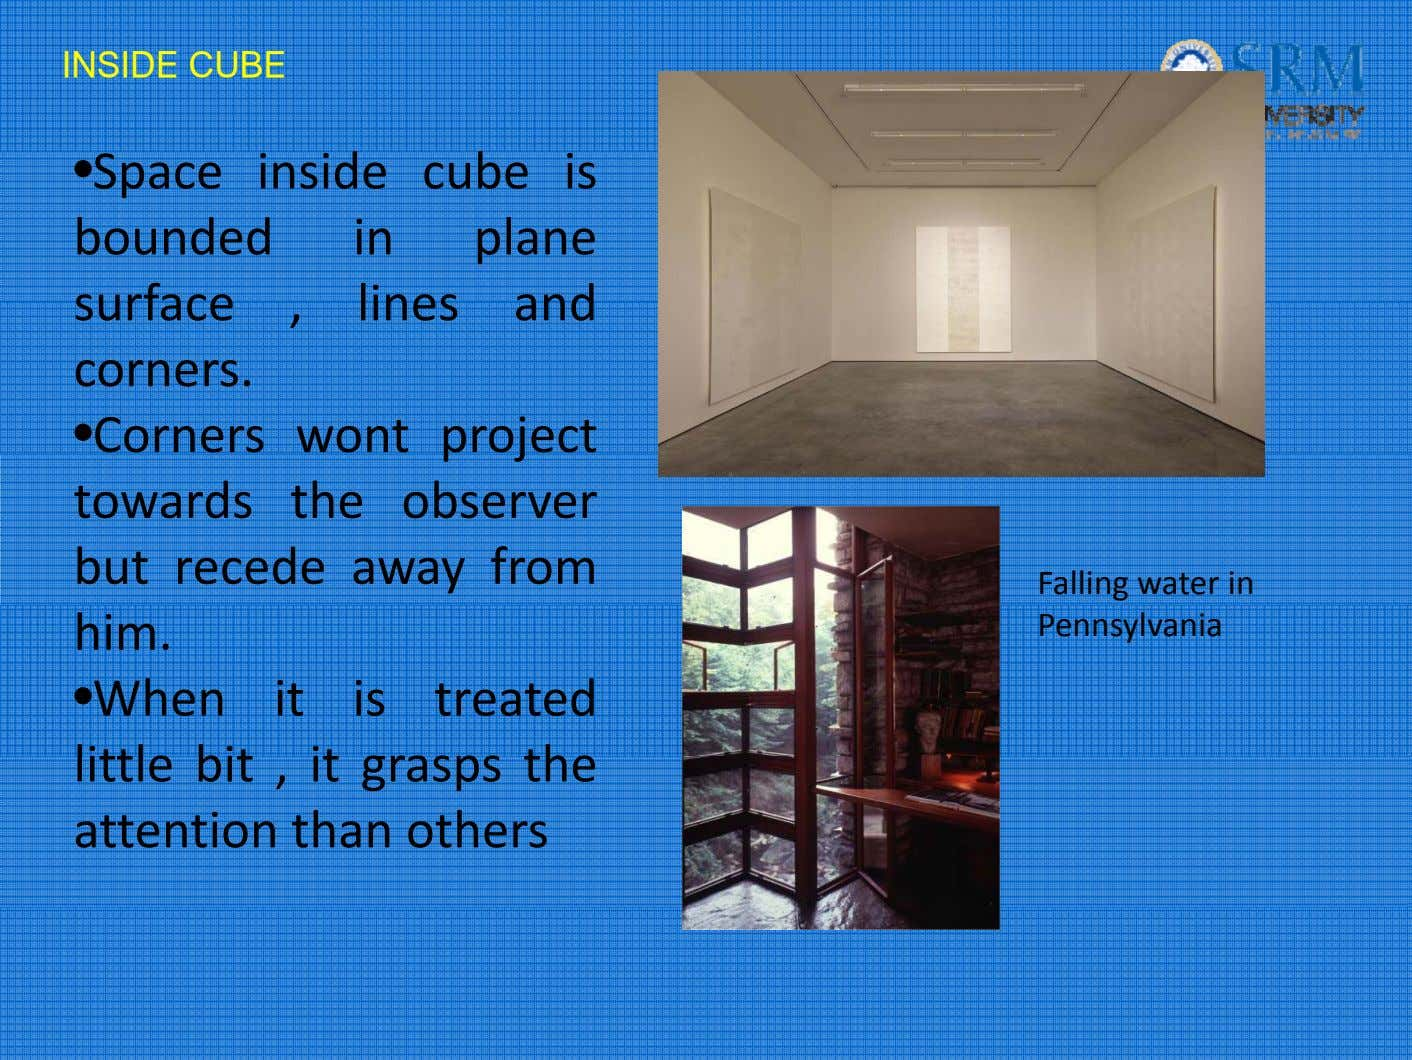 INSIDE CUBE •Space insi de cub e is bounded in plane surface , lines and